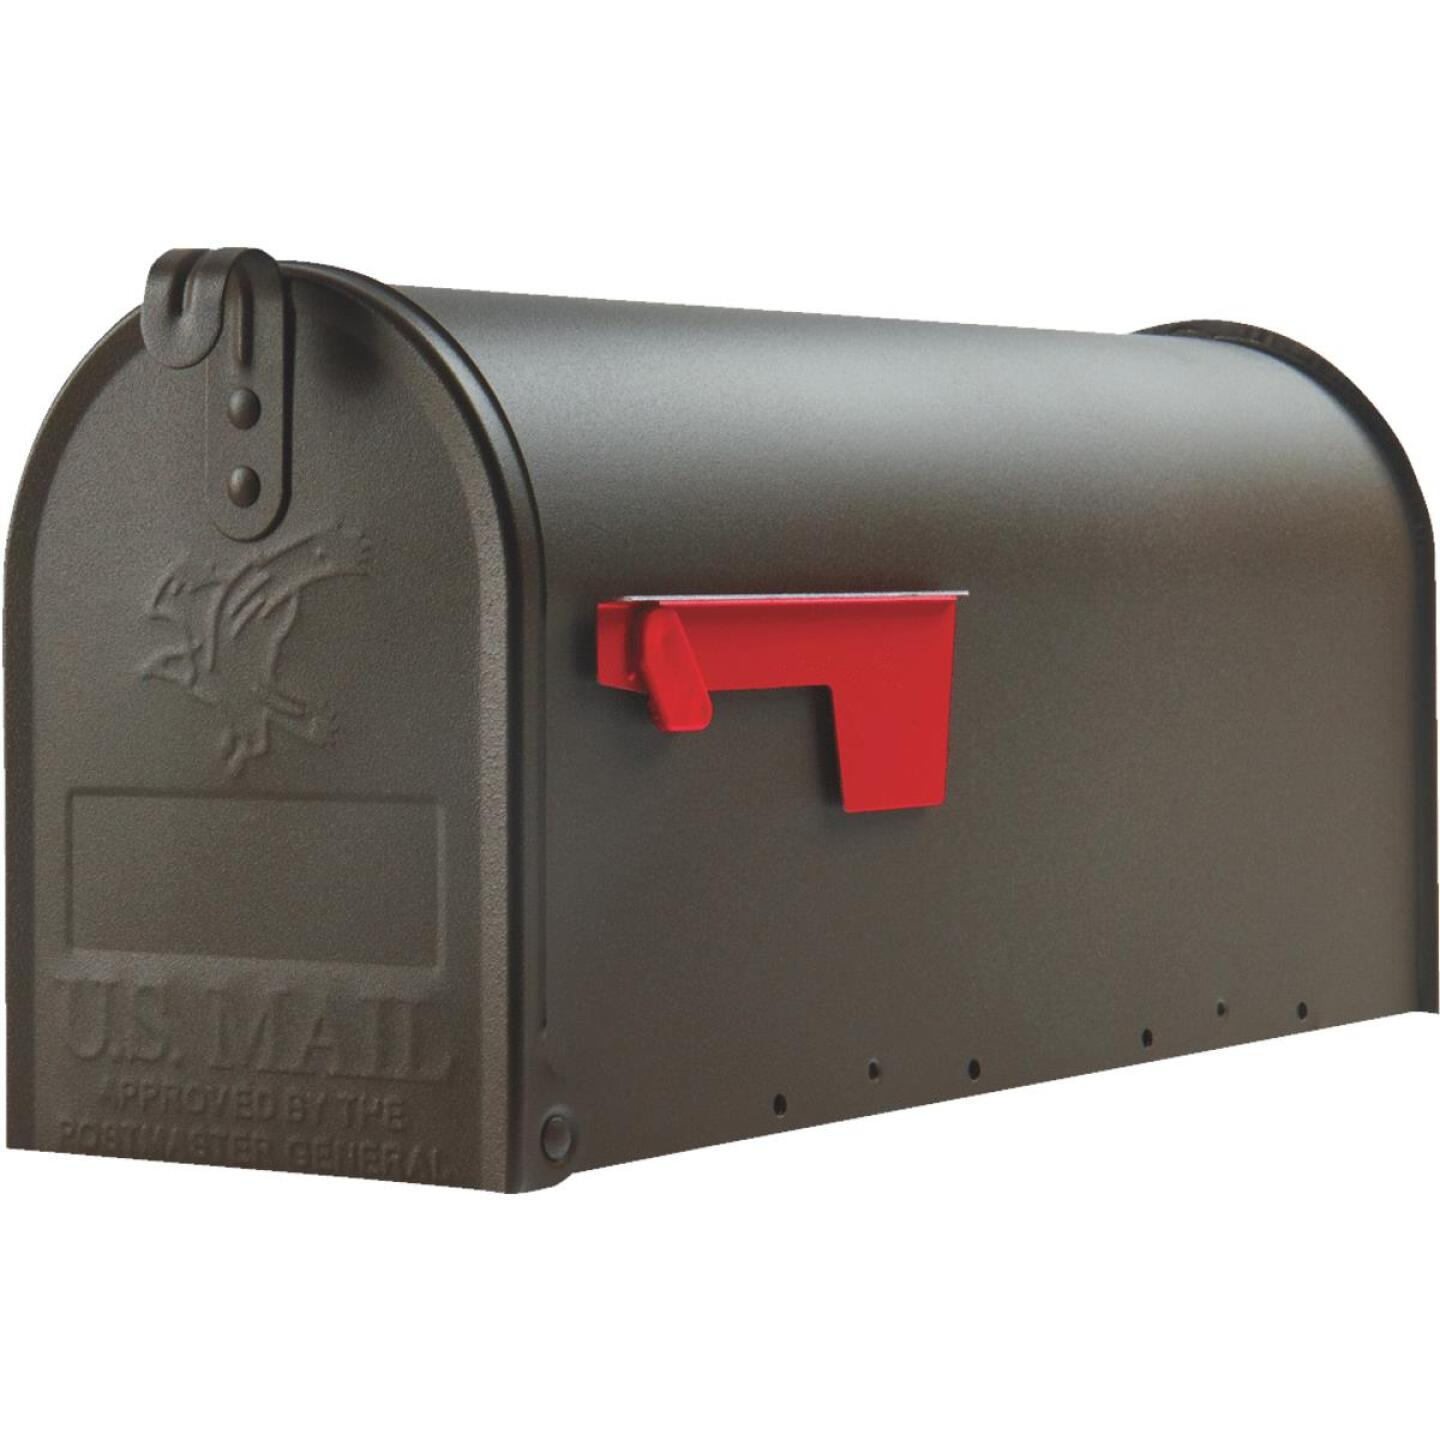 Gibraltar Elite T1 Bronze Steel Rural Post Mount Mailbox Image 2